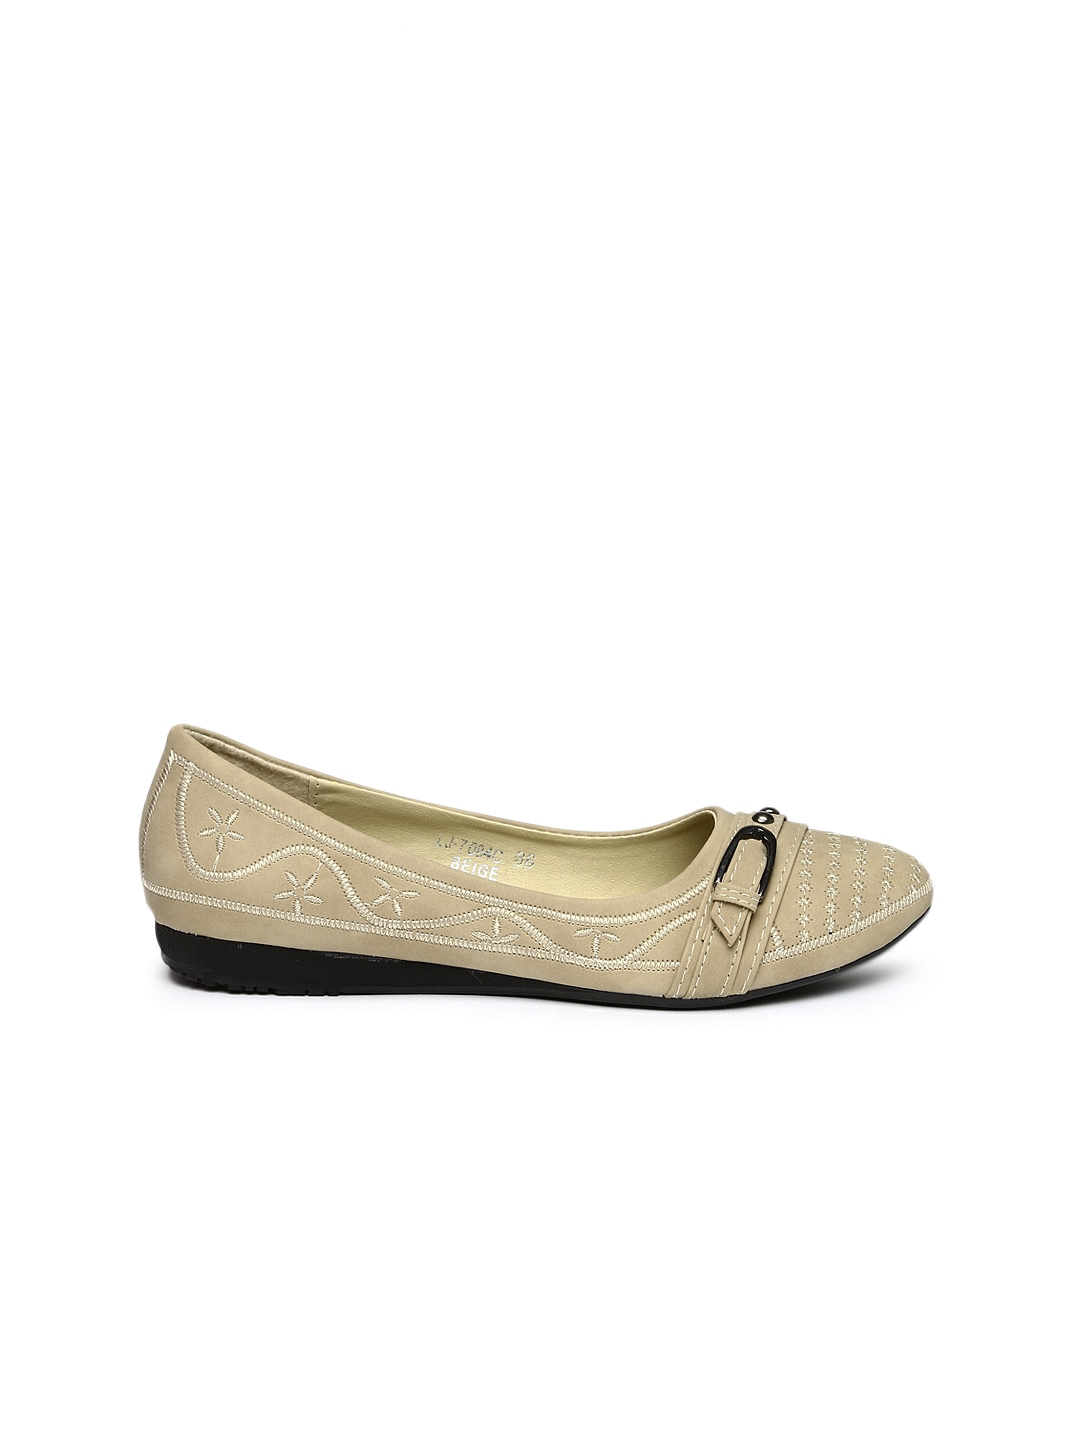 Excellent Addons Women Light Brown Flat Shoes 243986  Buy Myntra Addons Flats